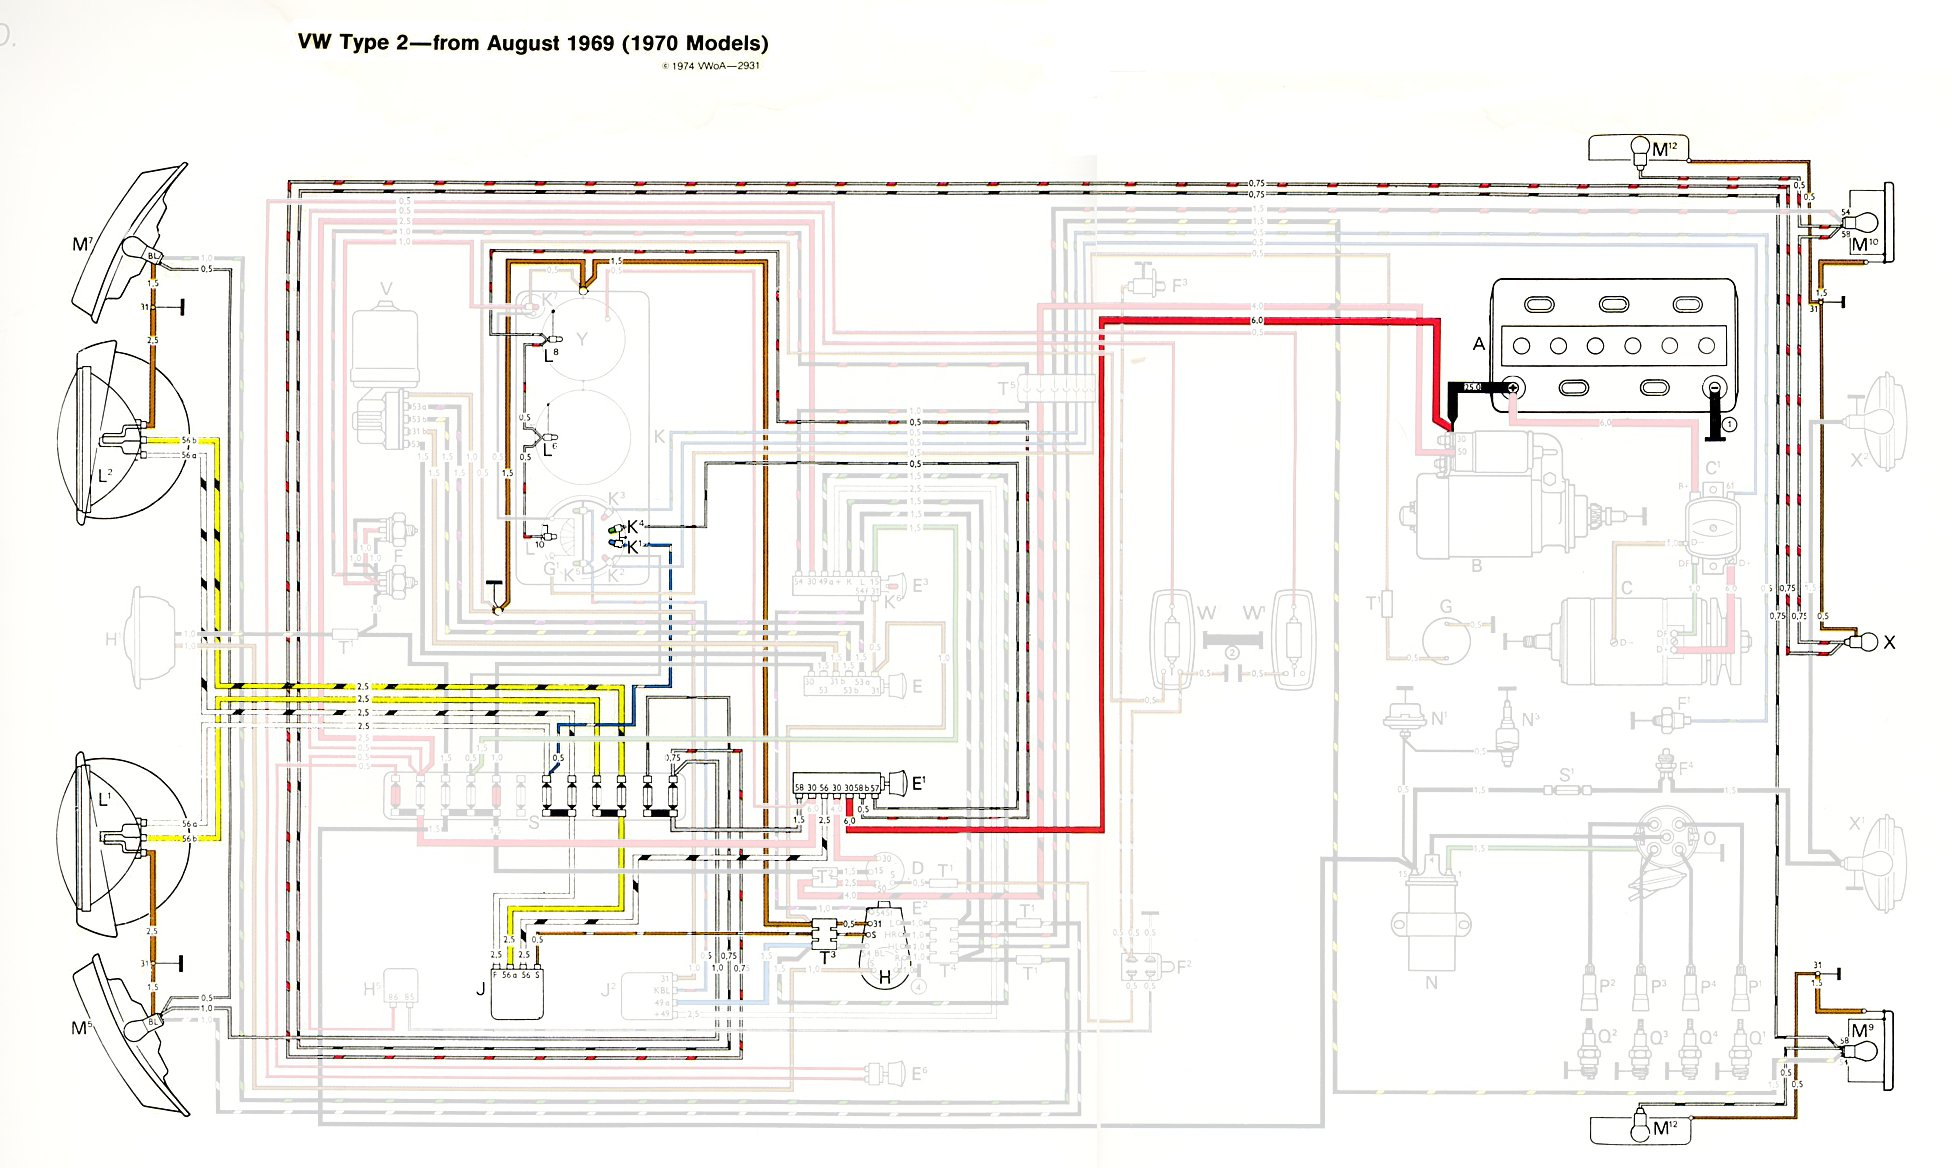 saab 9000 fuse box diagram saab wiring diagrams